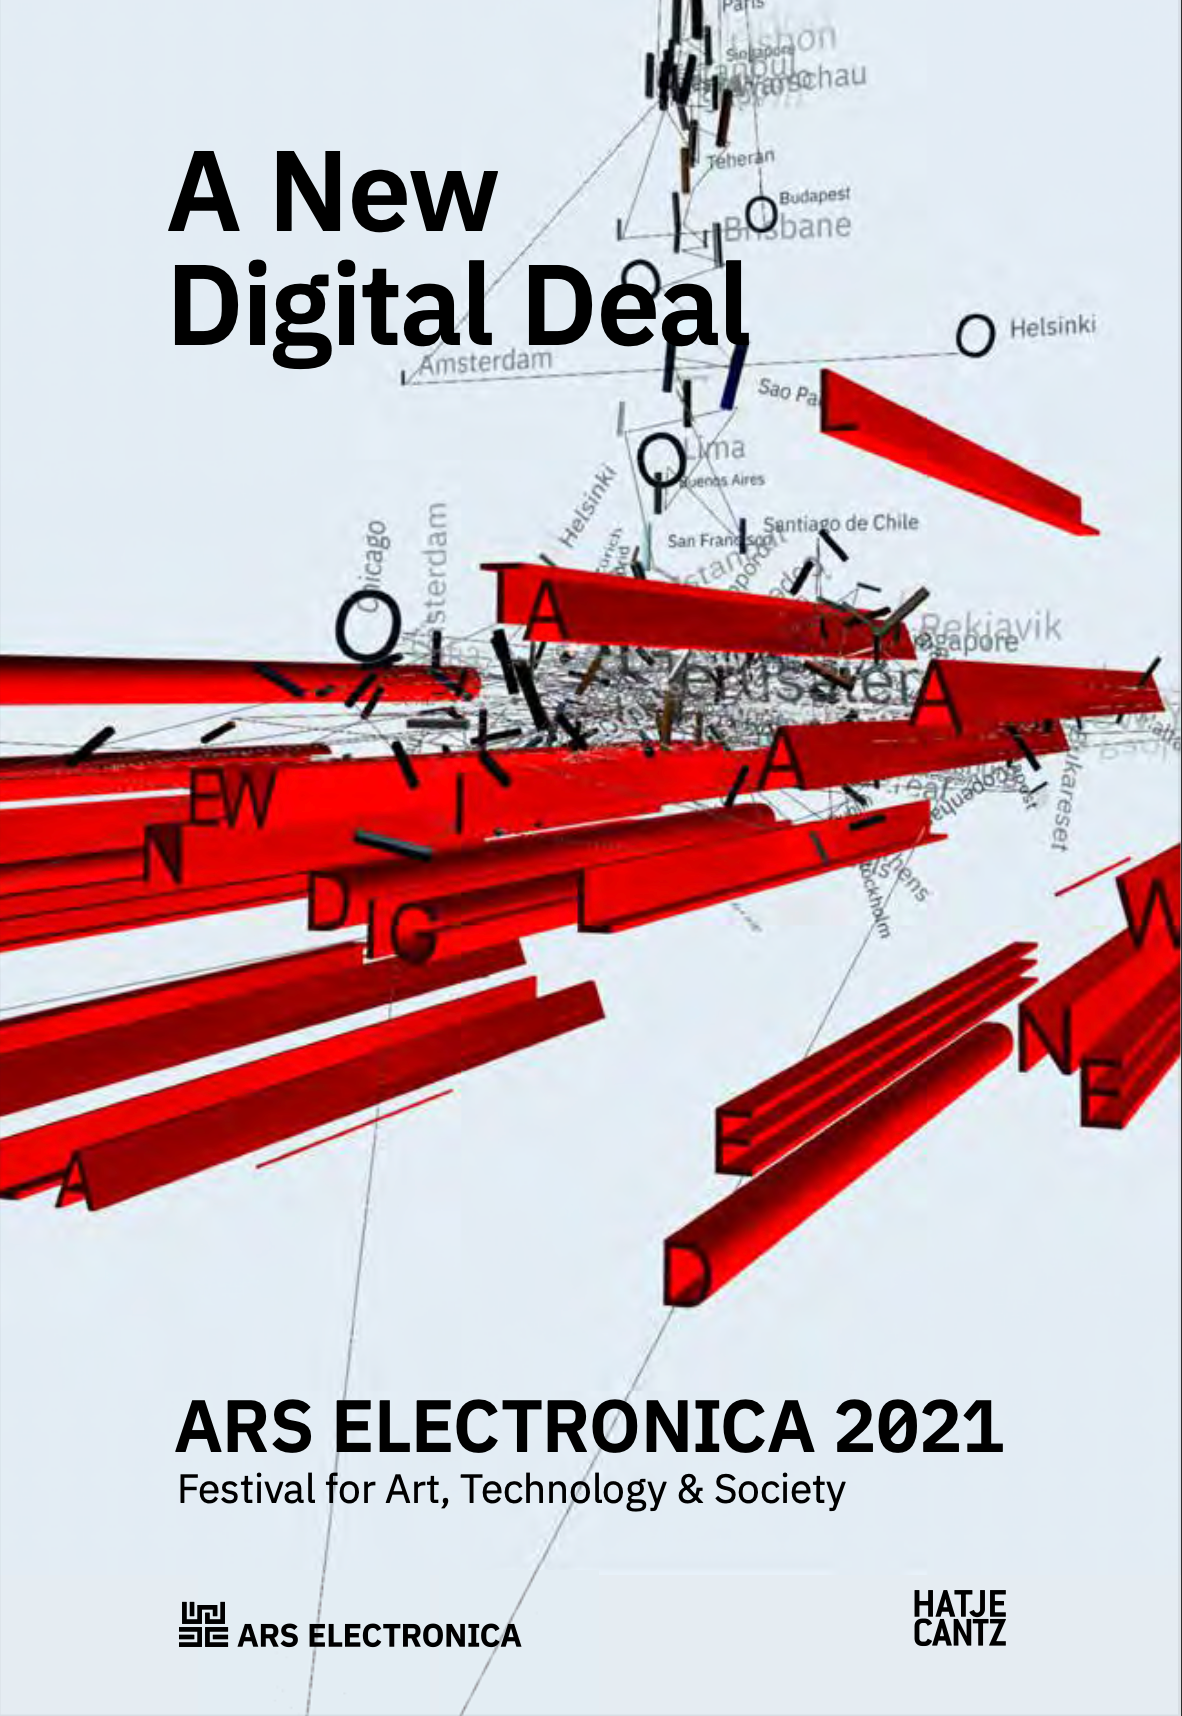 Ars Electronica 2021 - A New Digital Deal